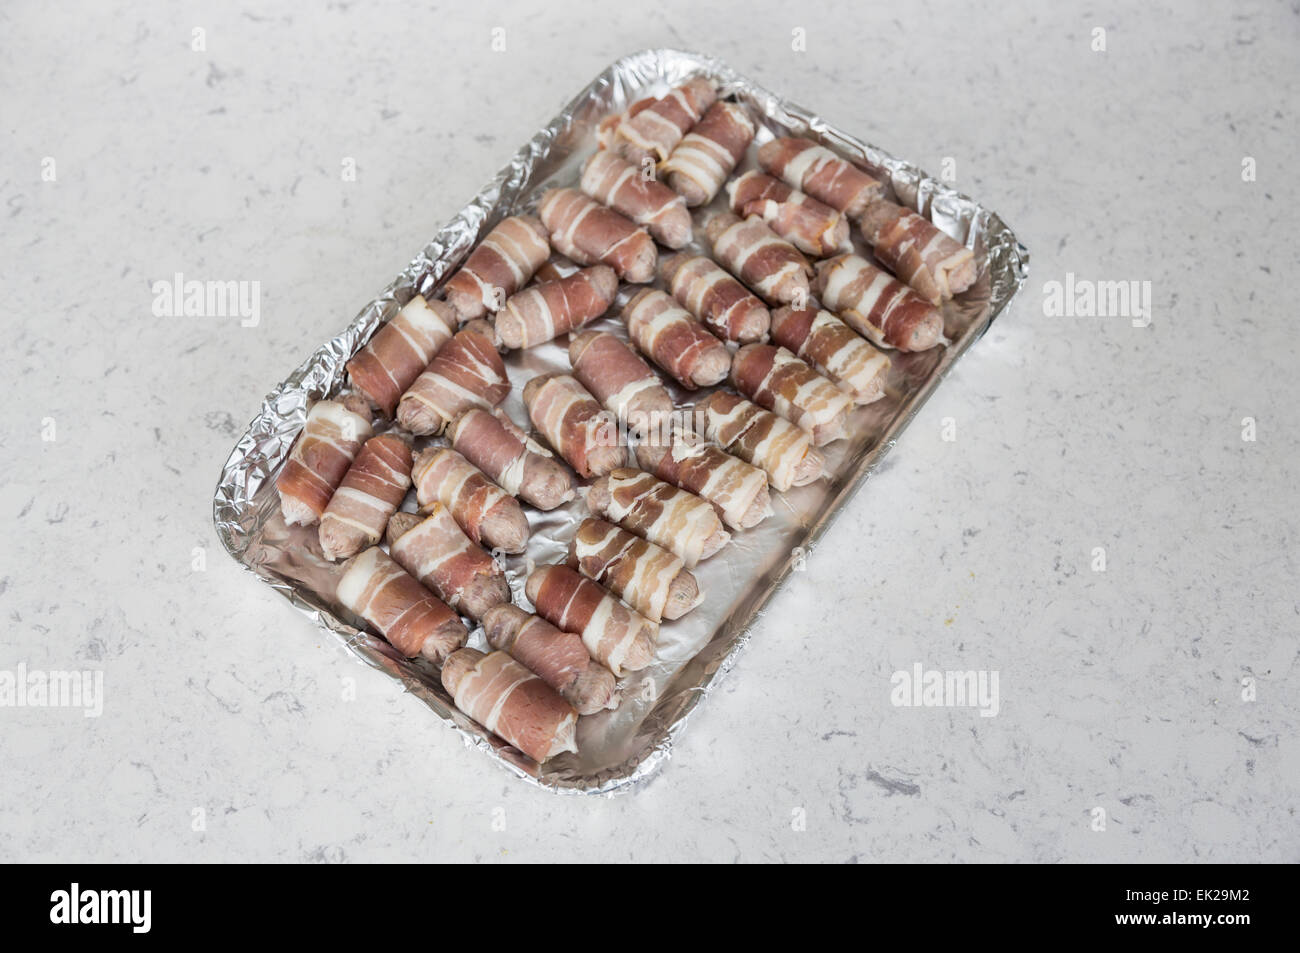 Tray lined in foil with uncooked small sausages wrapped in bacon (pigs in blankets) ready for cooking, part of a - Stock Image